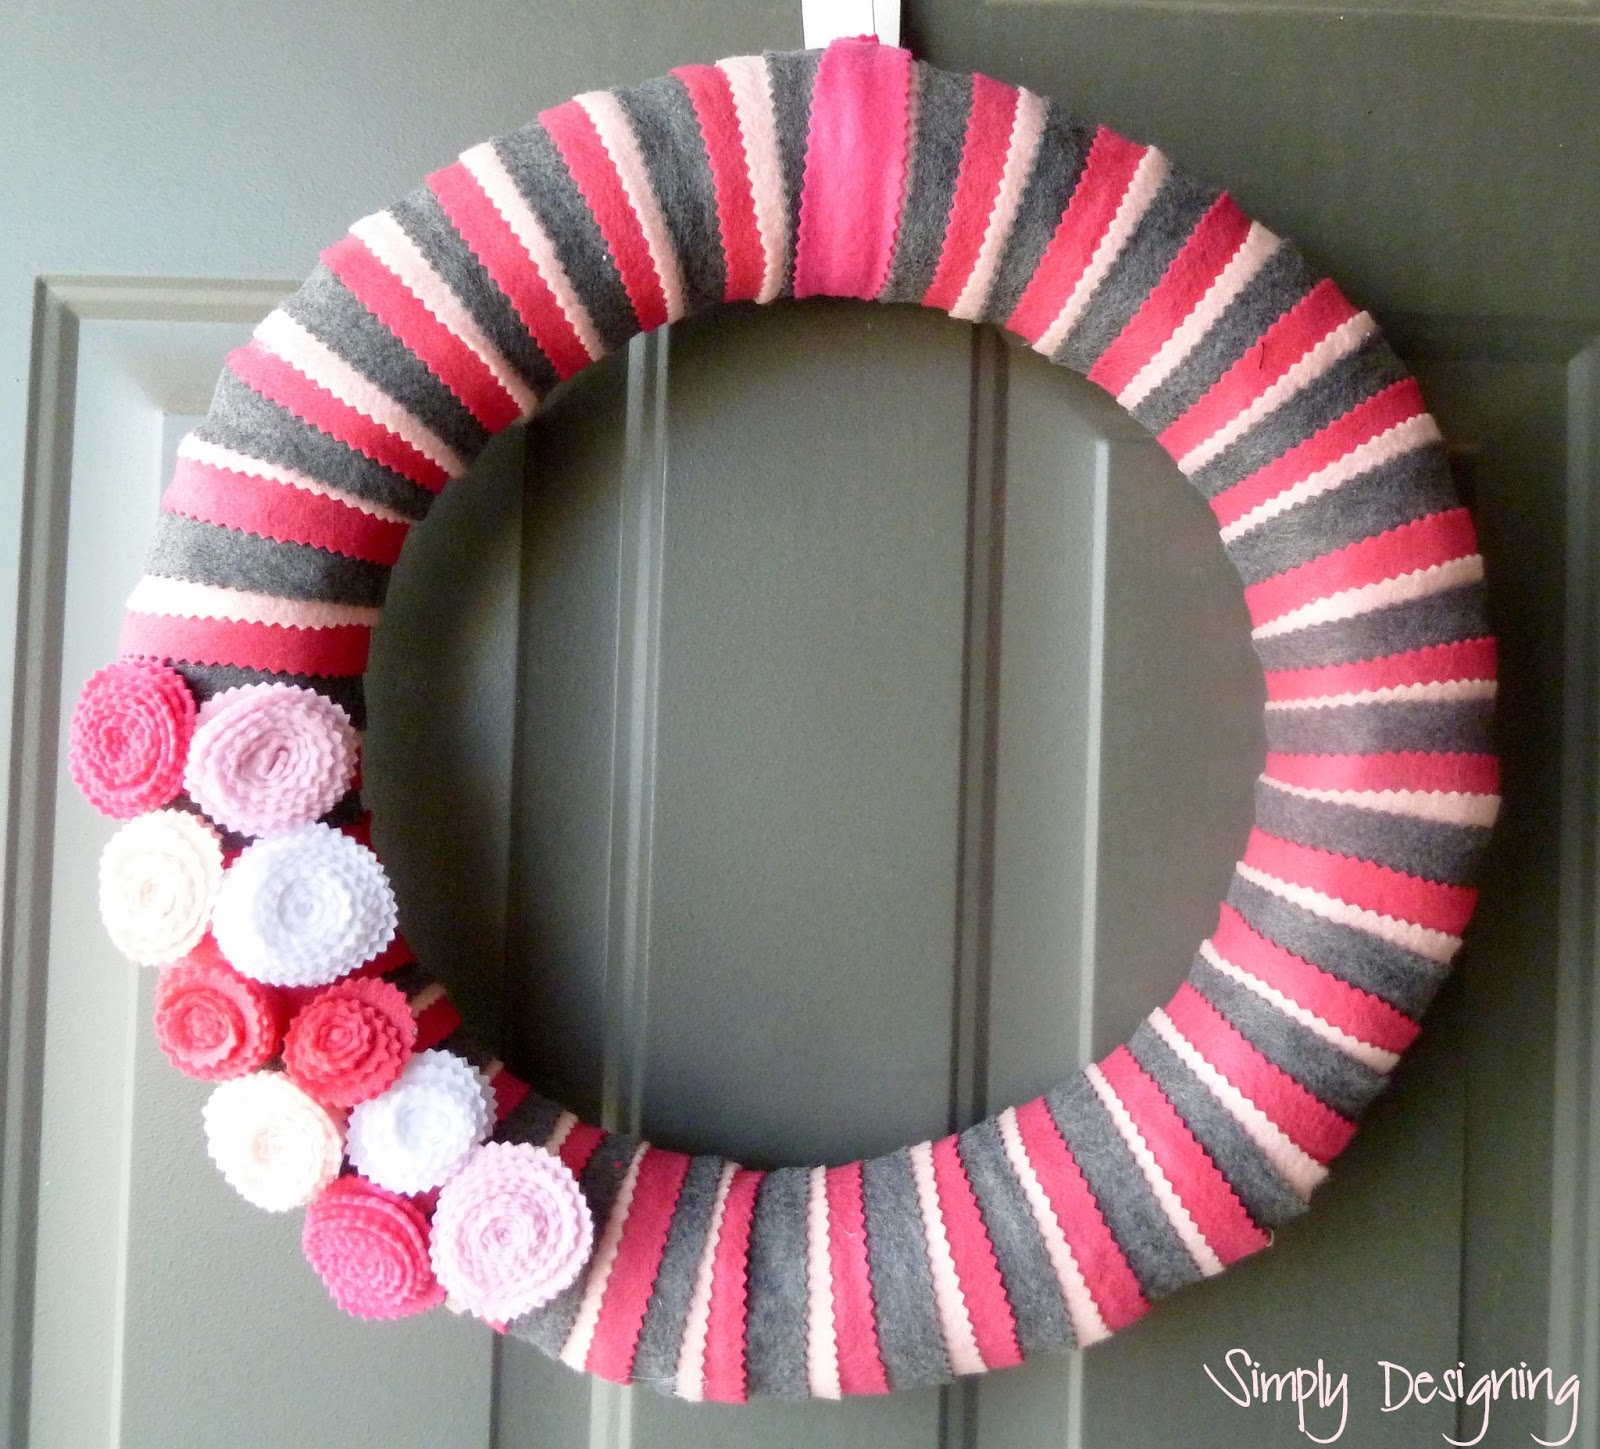 spring wreaths tfile decor and collection of to deck front door for doors out concept shocking ideas the wreath summer